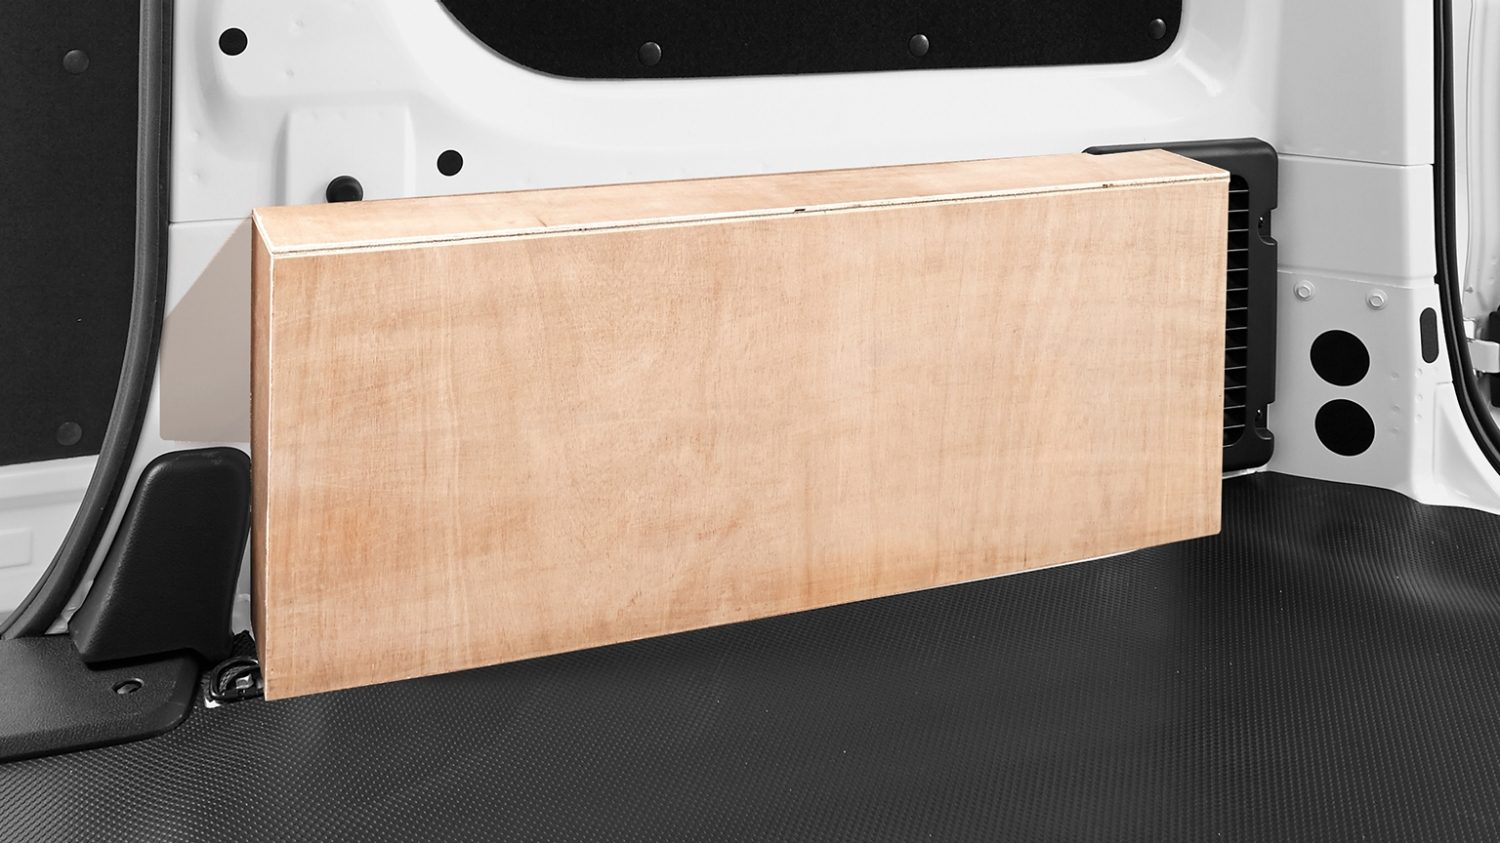 Nissan NV200 - Interior - Wheel arch wood protection boxes